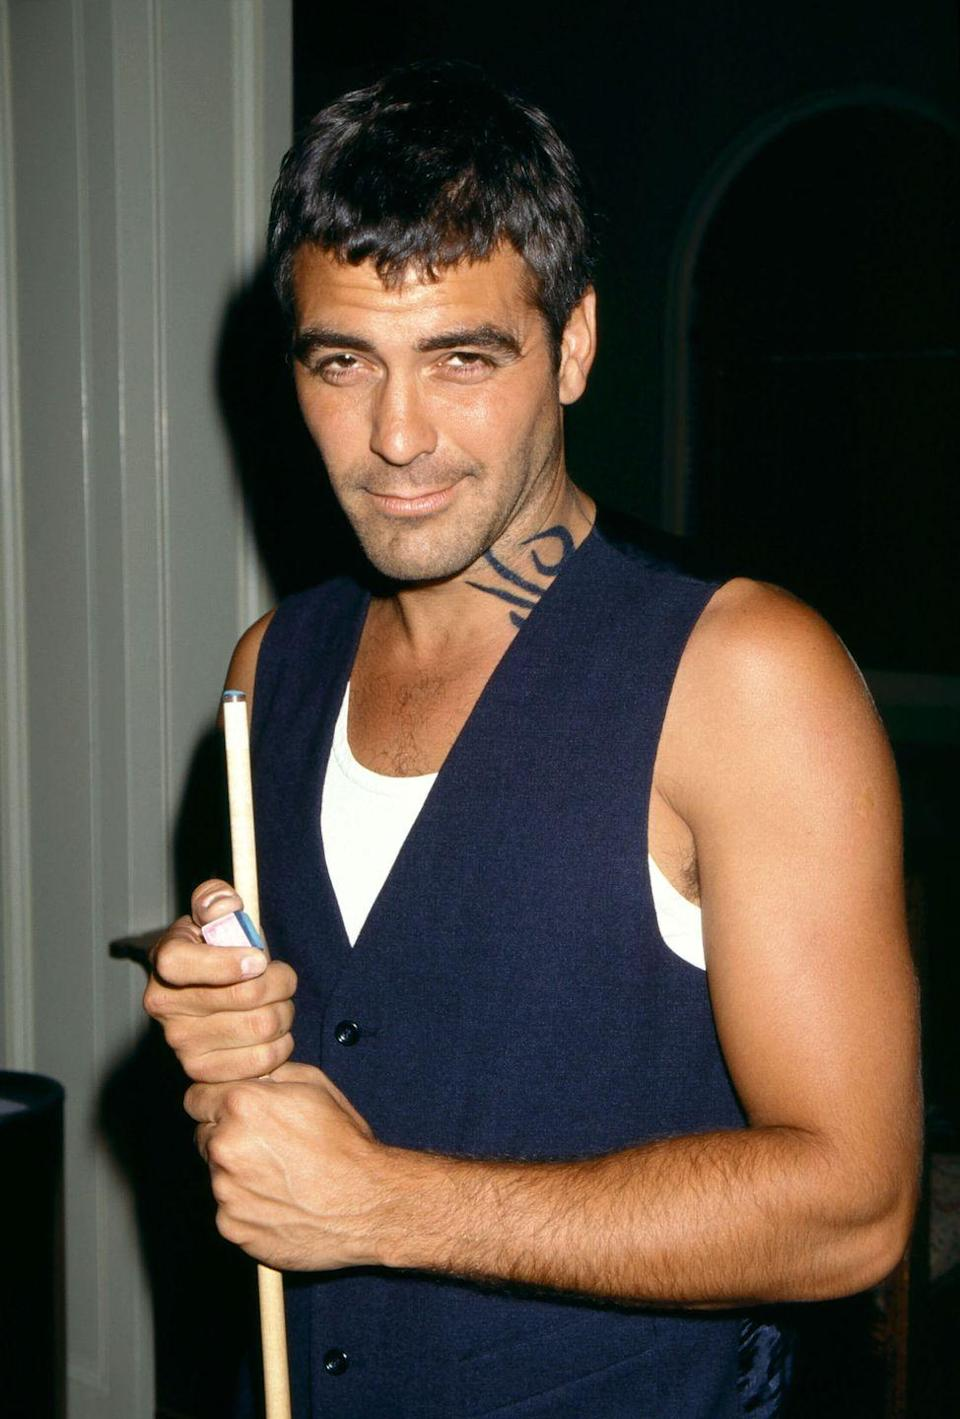 <p>Clooney poses with a pool stick during the filming of <em>From Dusk till Dawn</em> in 1995 in Los Angeles.</p>